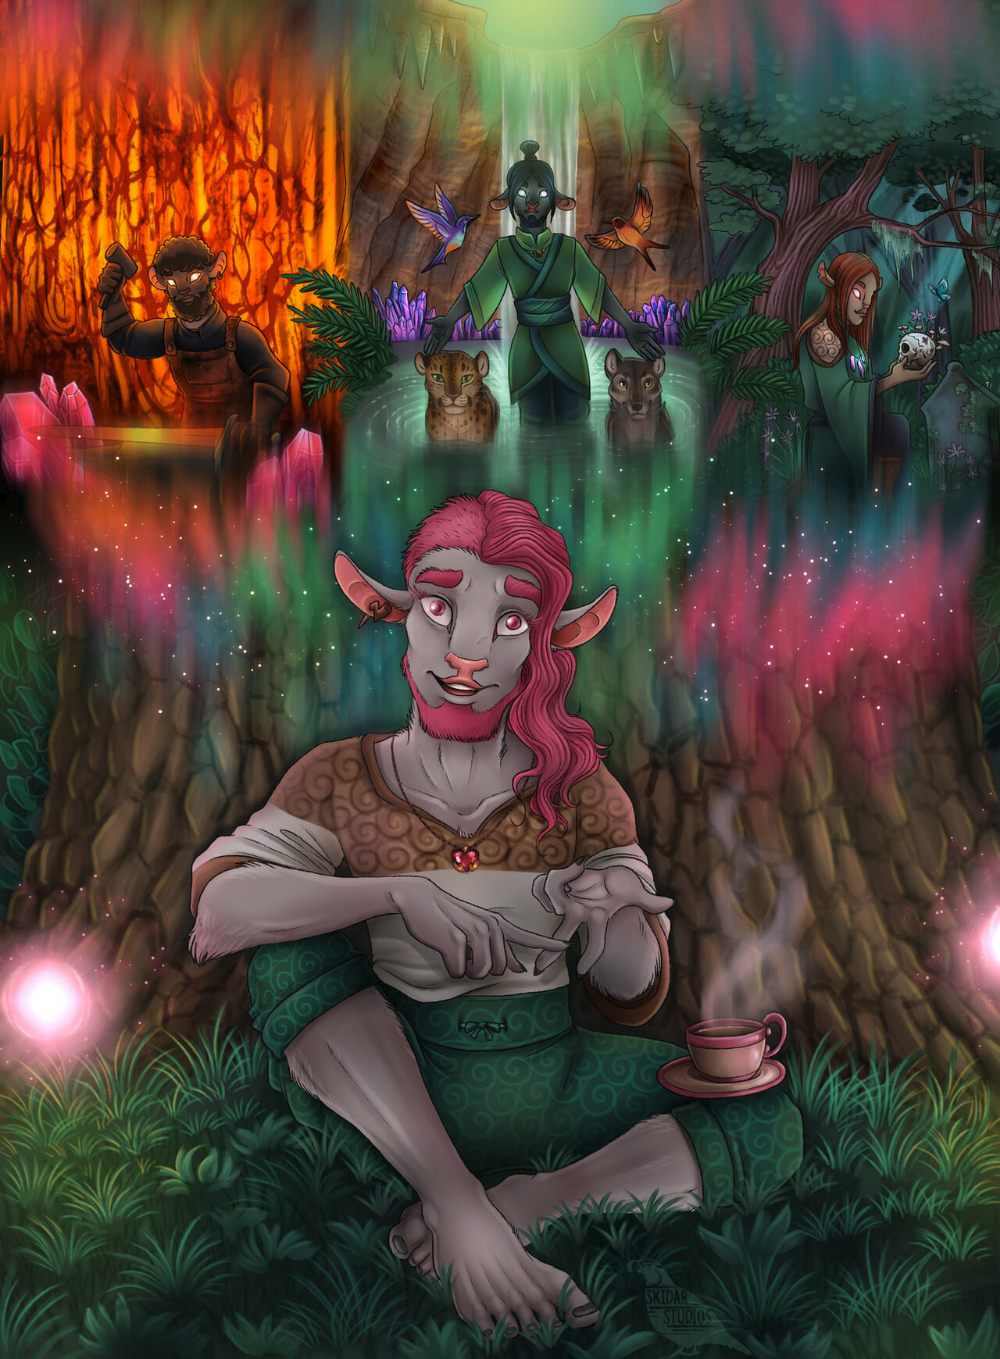 Fan Art Gallery Cold Comfort Critical Role Critical Role Fan Art Dungeons And Dragons